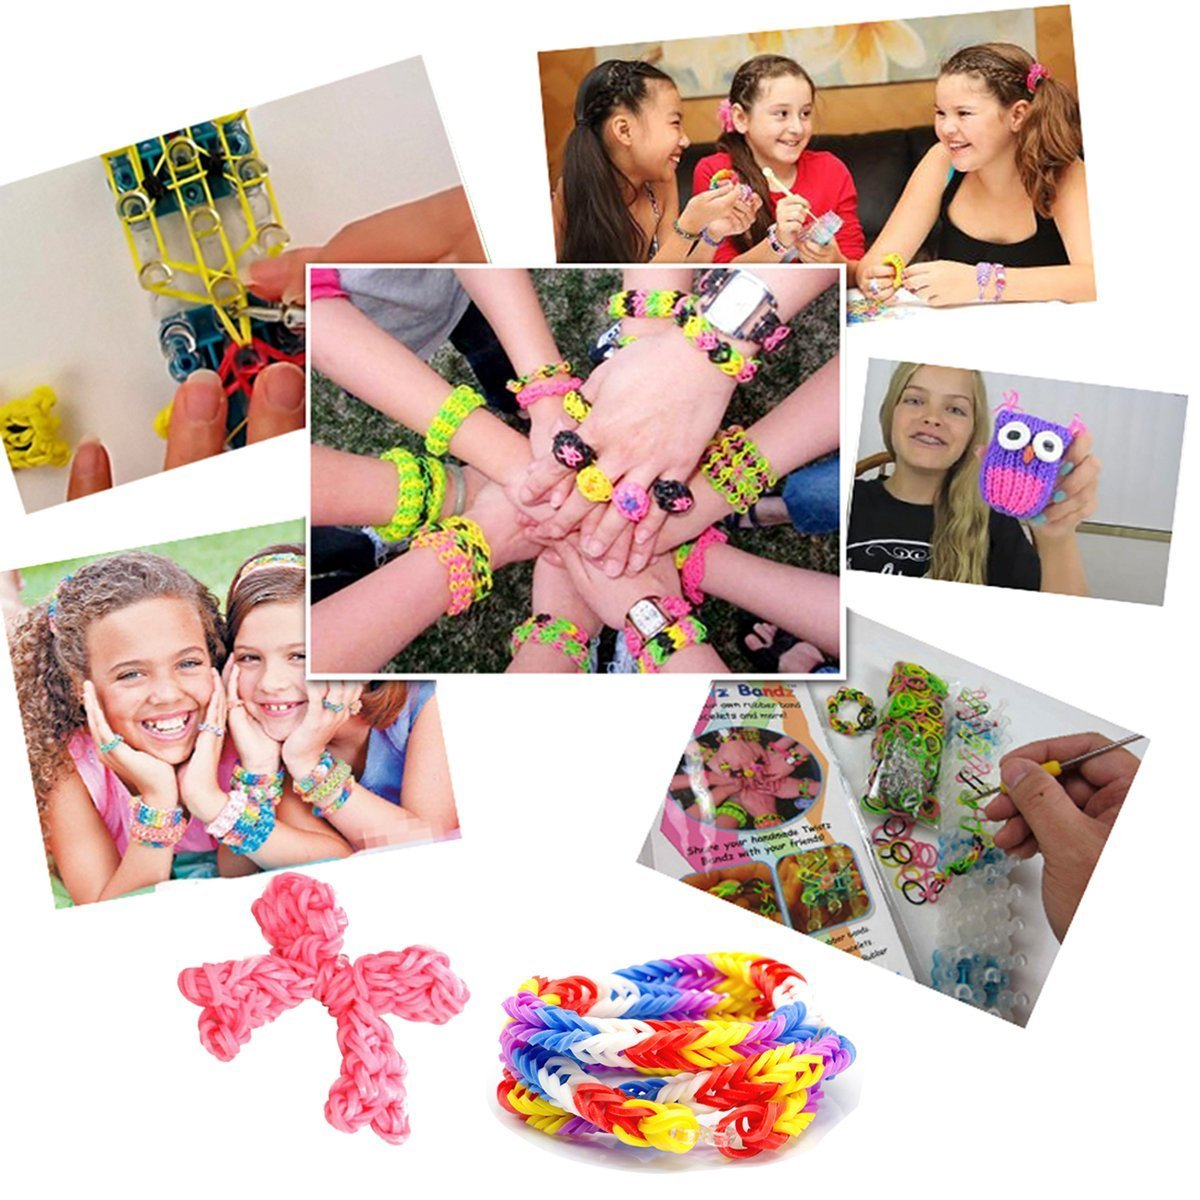 Gift Prod 14000Pcs Colorful Rubber Band Refill Kit for Loom Rainbow Bracelets Dress Making 28 Colors Rainbow Rubber Band for Crafting Gadgets Friendship Bracelet (Style 2)